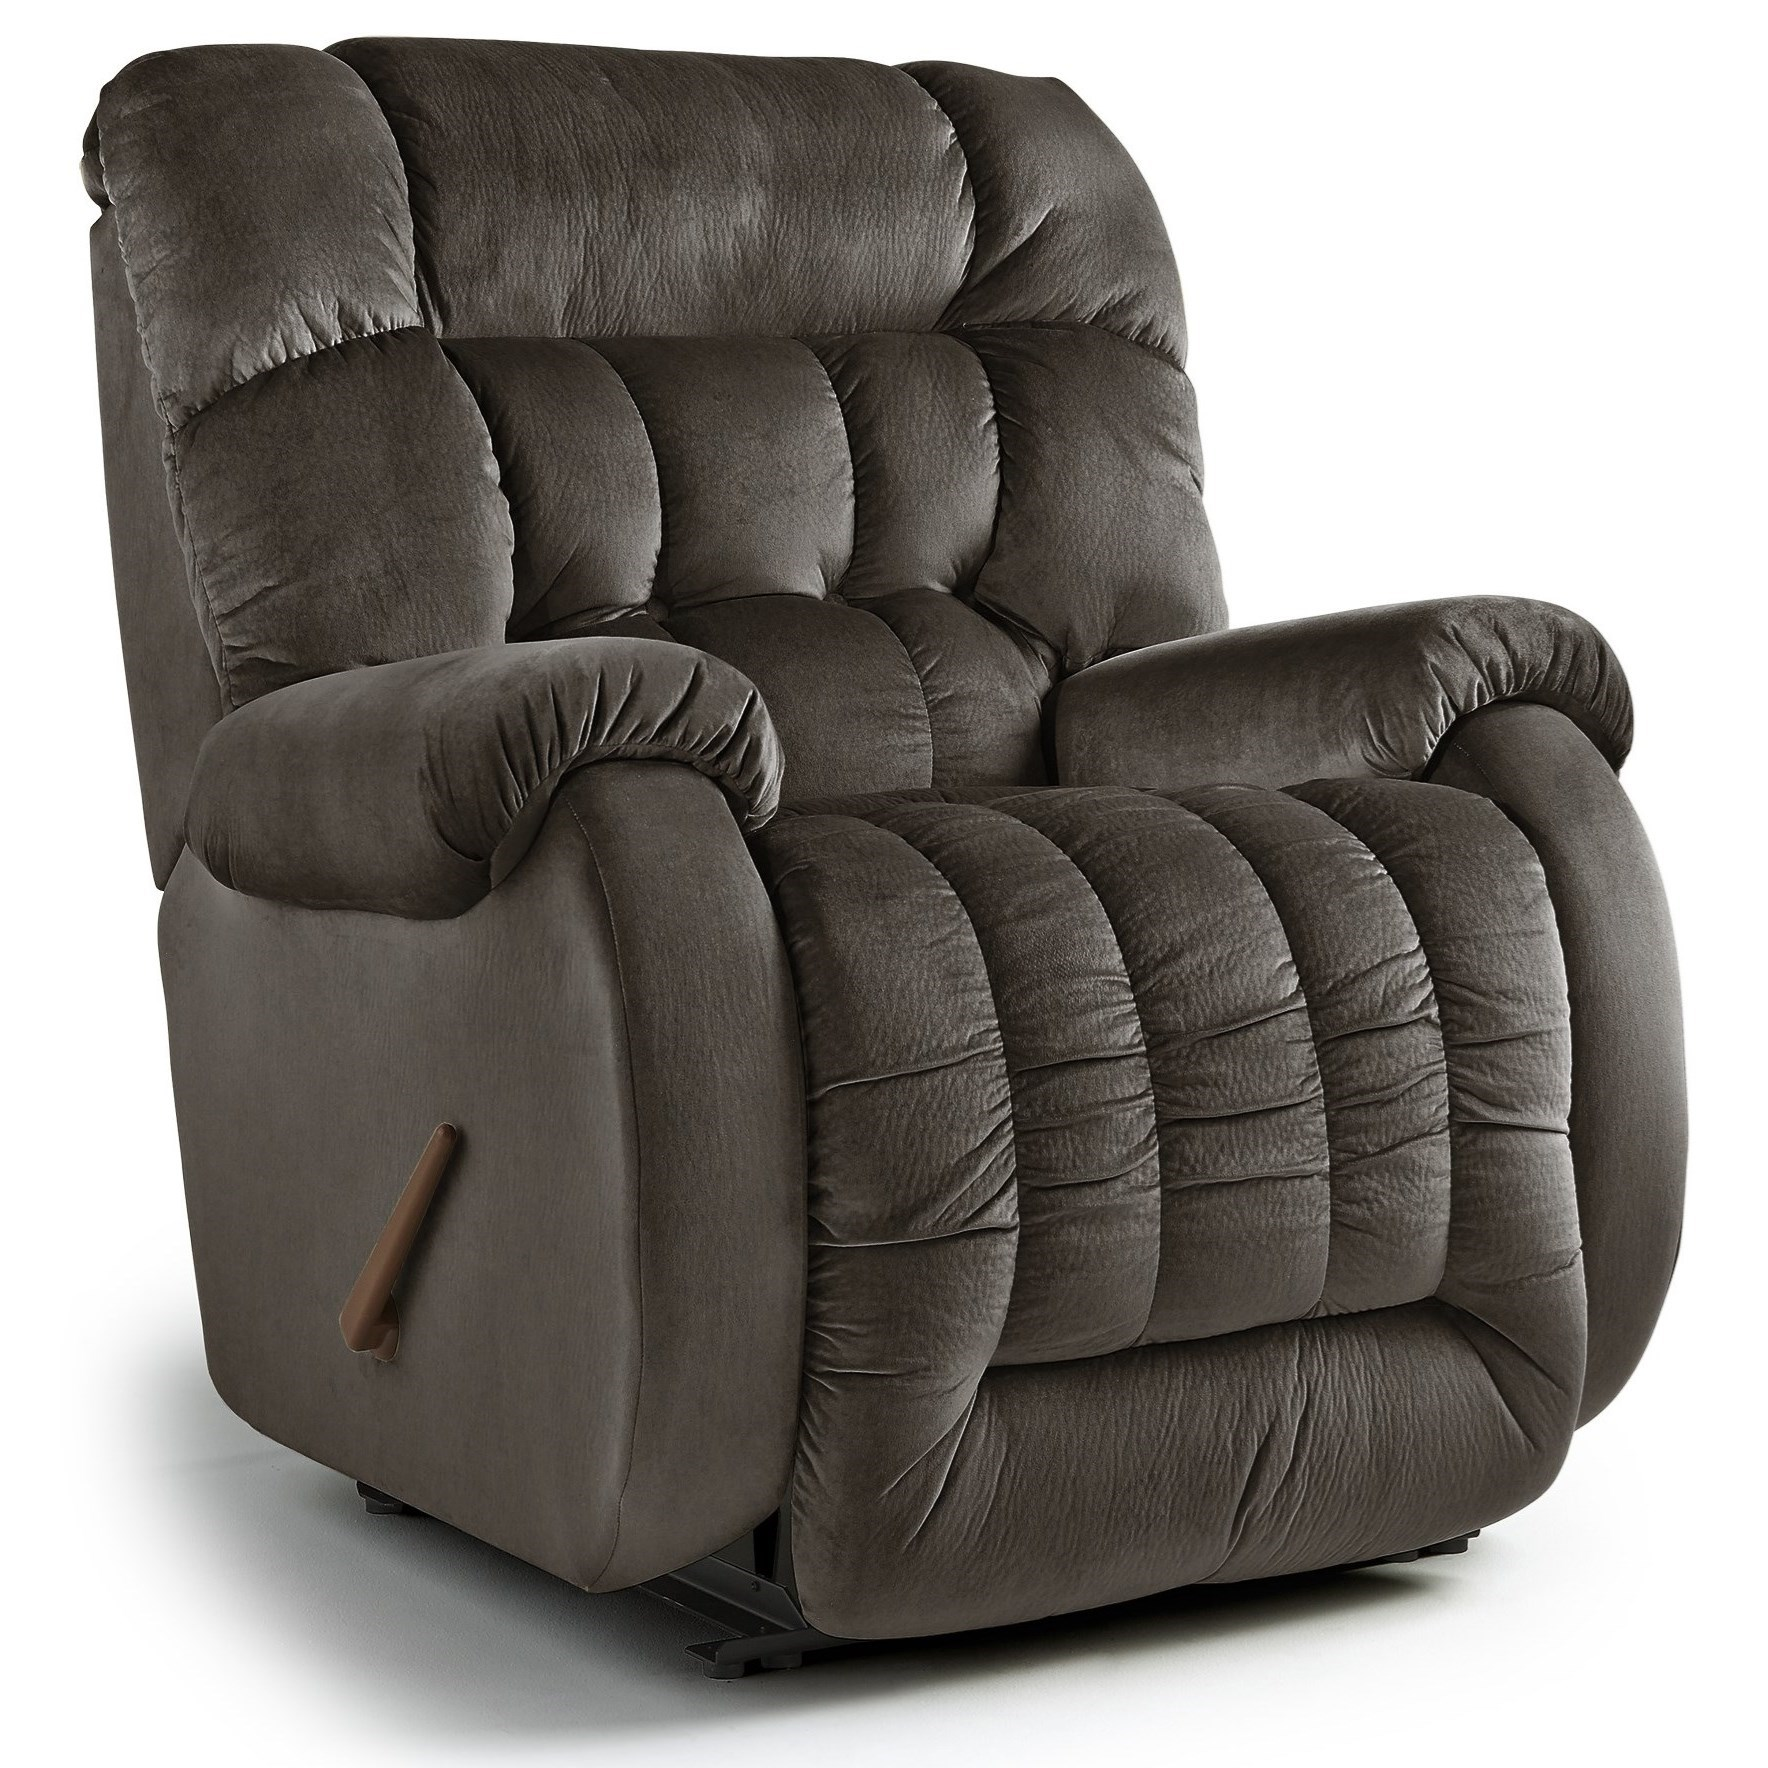 Bravo Furniture The Beast Oversized Beast Recliner Bennett S Furniture And Mattresses Recliners